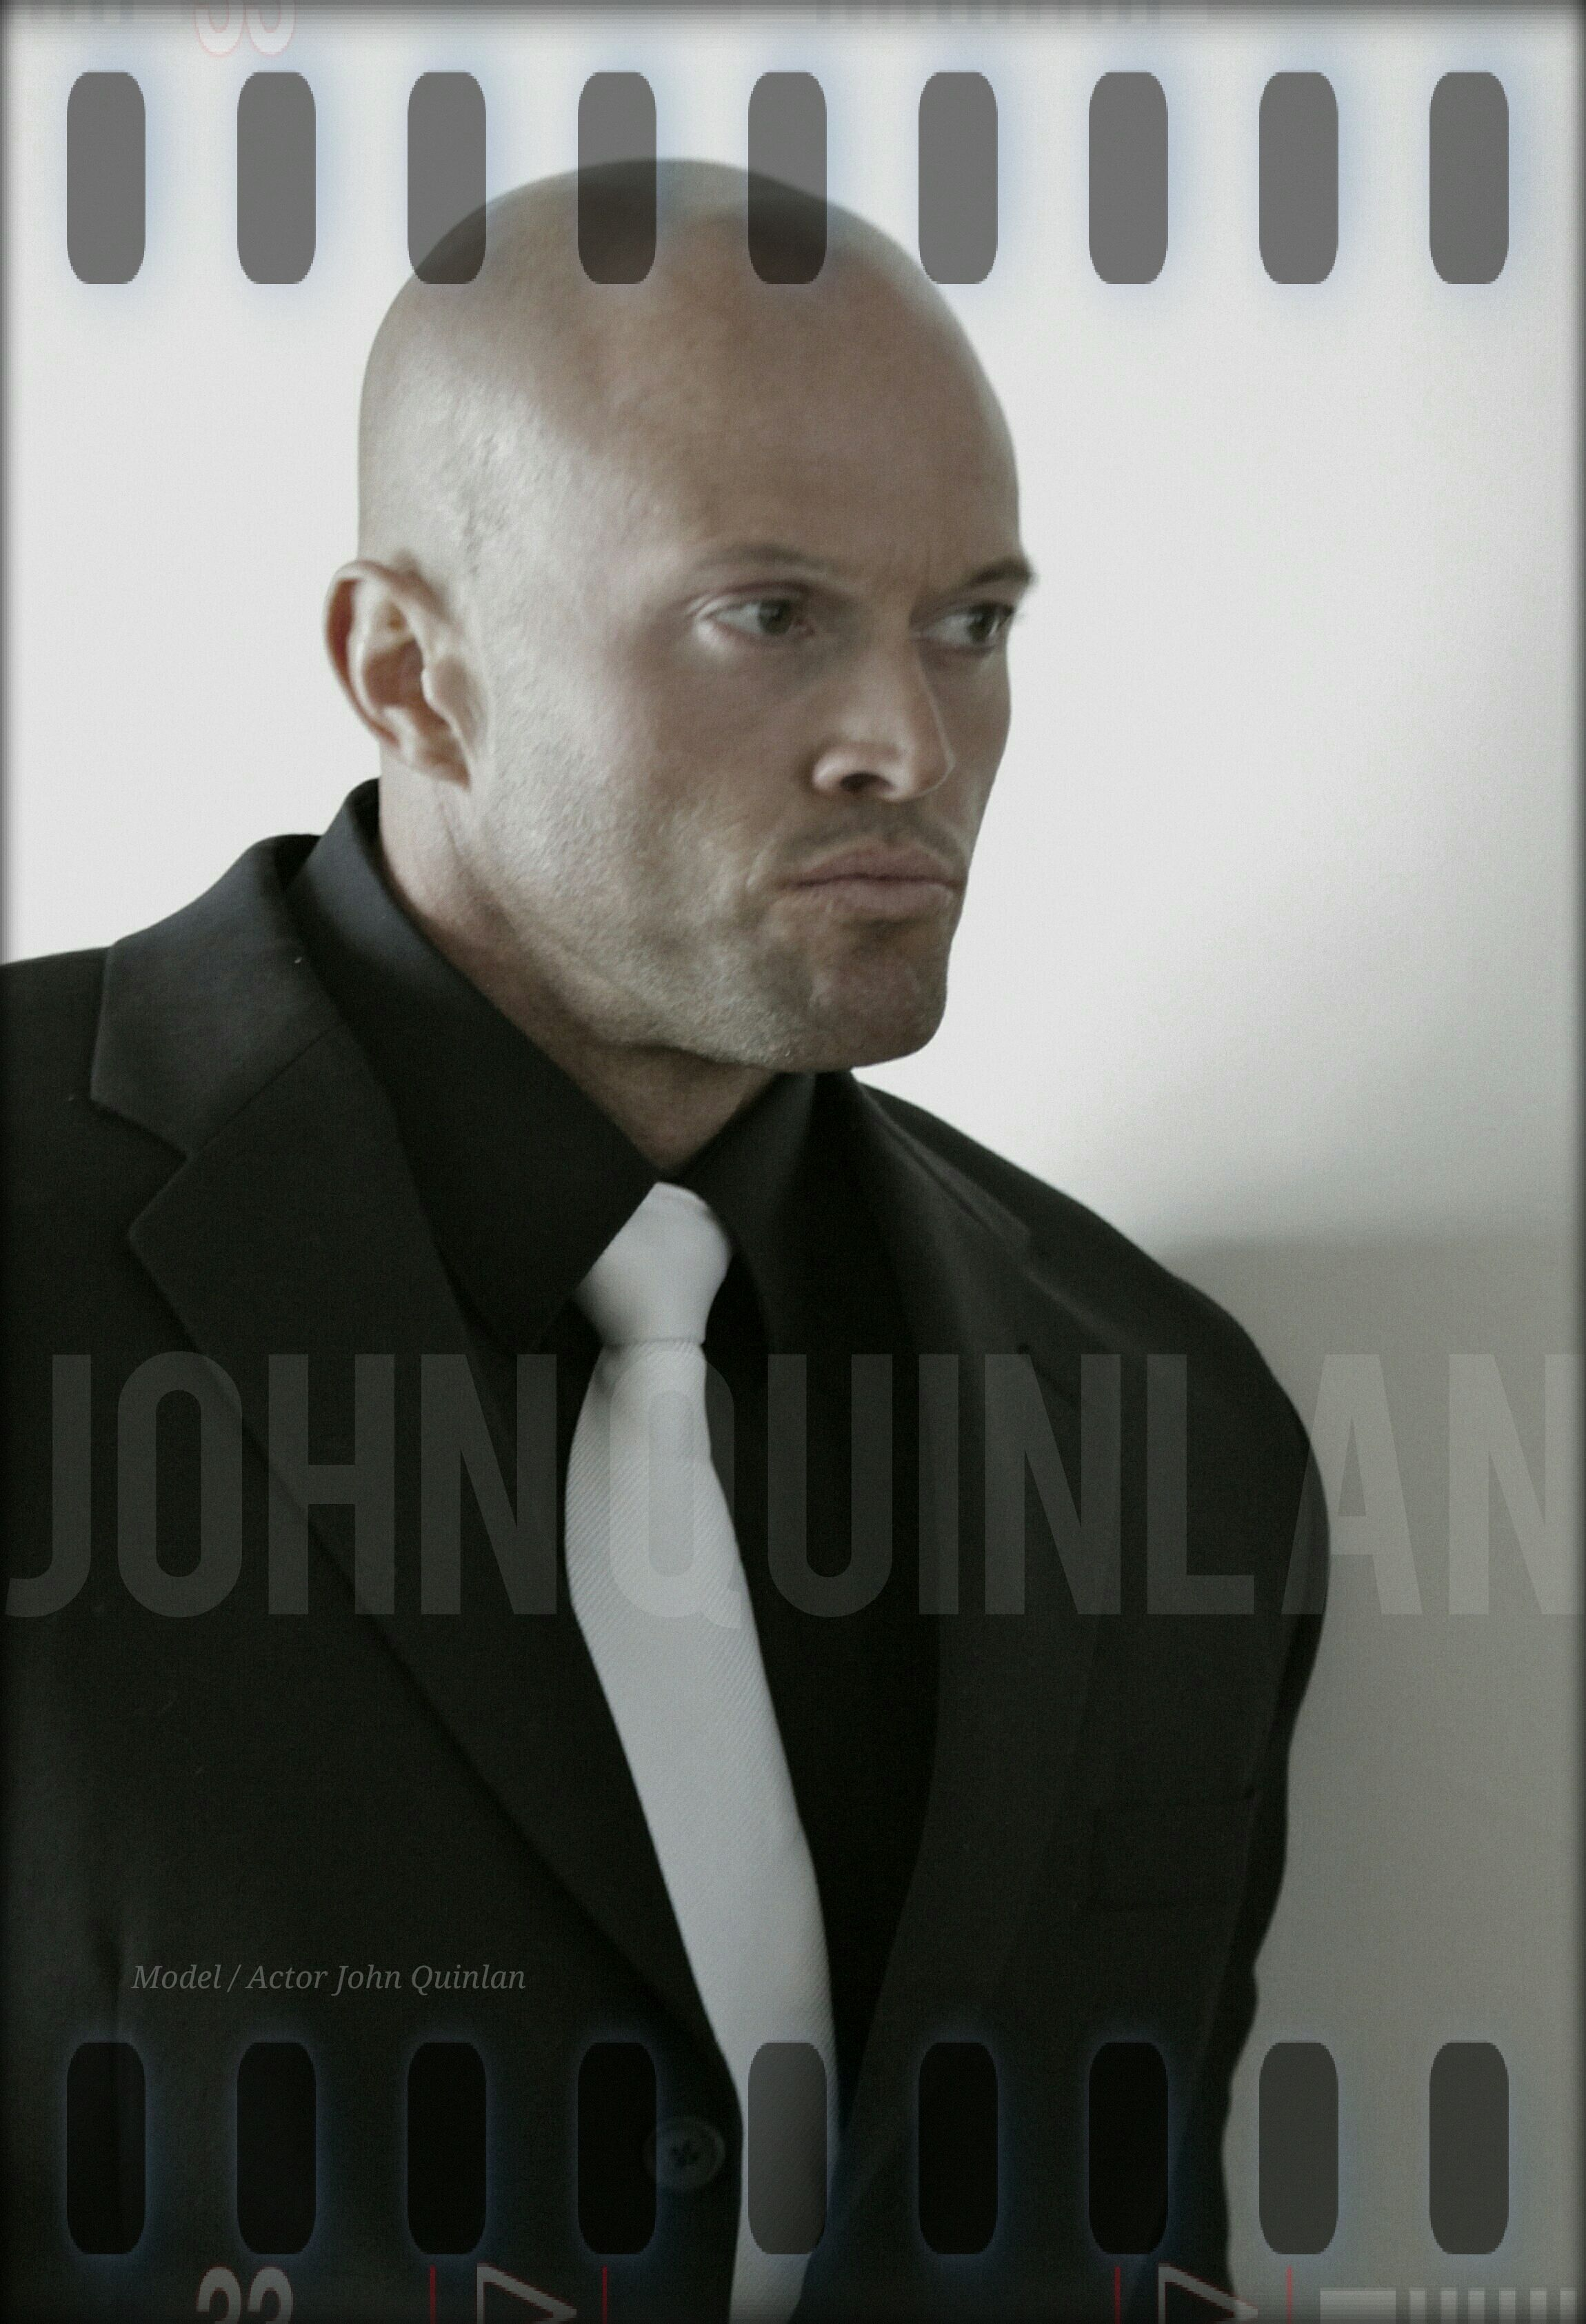 Male Fashion Model & Actor John Quinlan in Calvin Klein Poster #JohnQuinlan